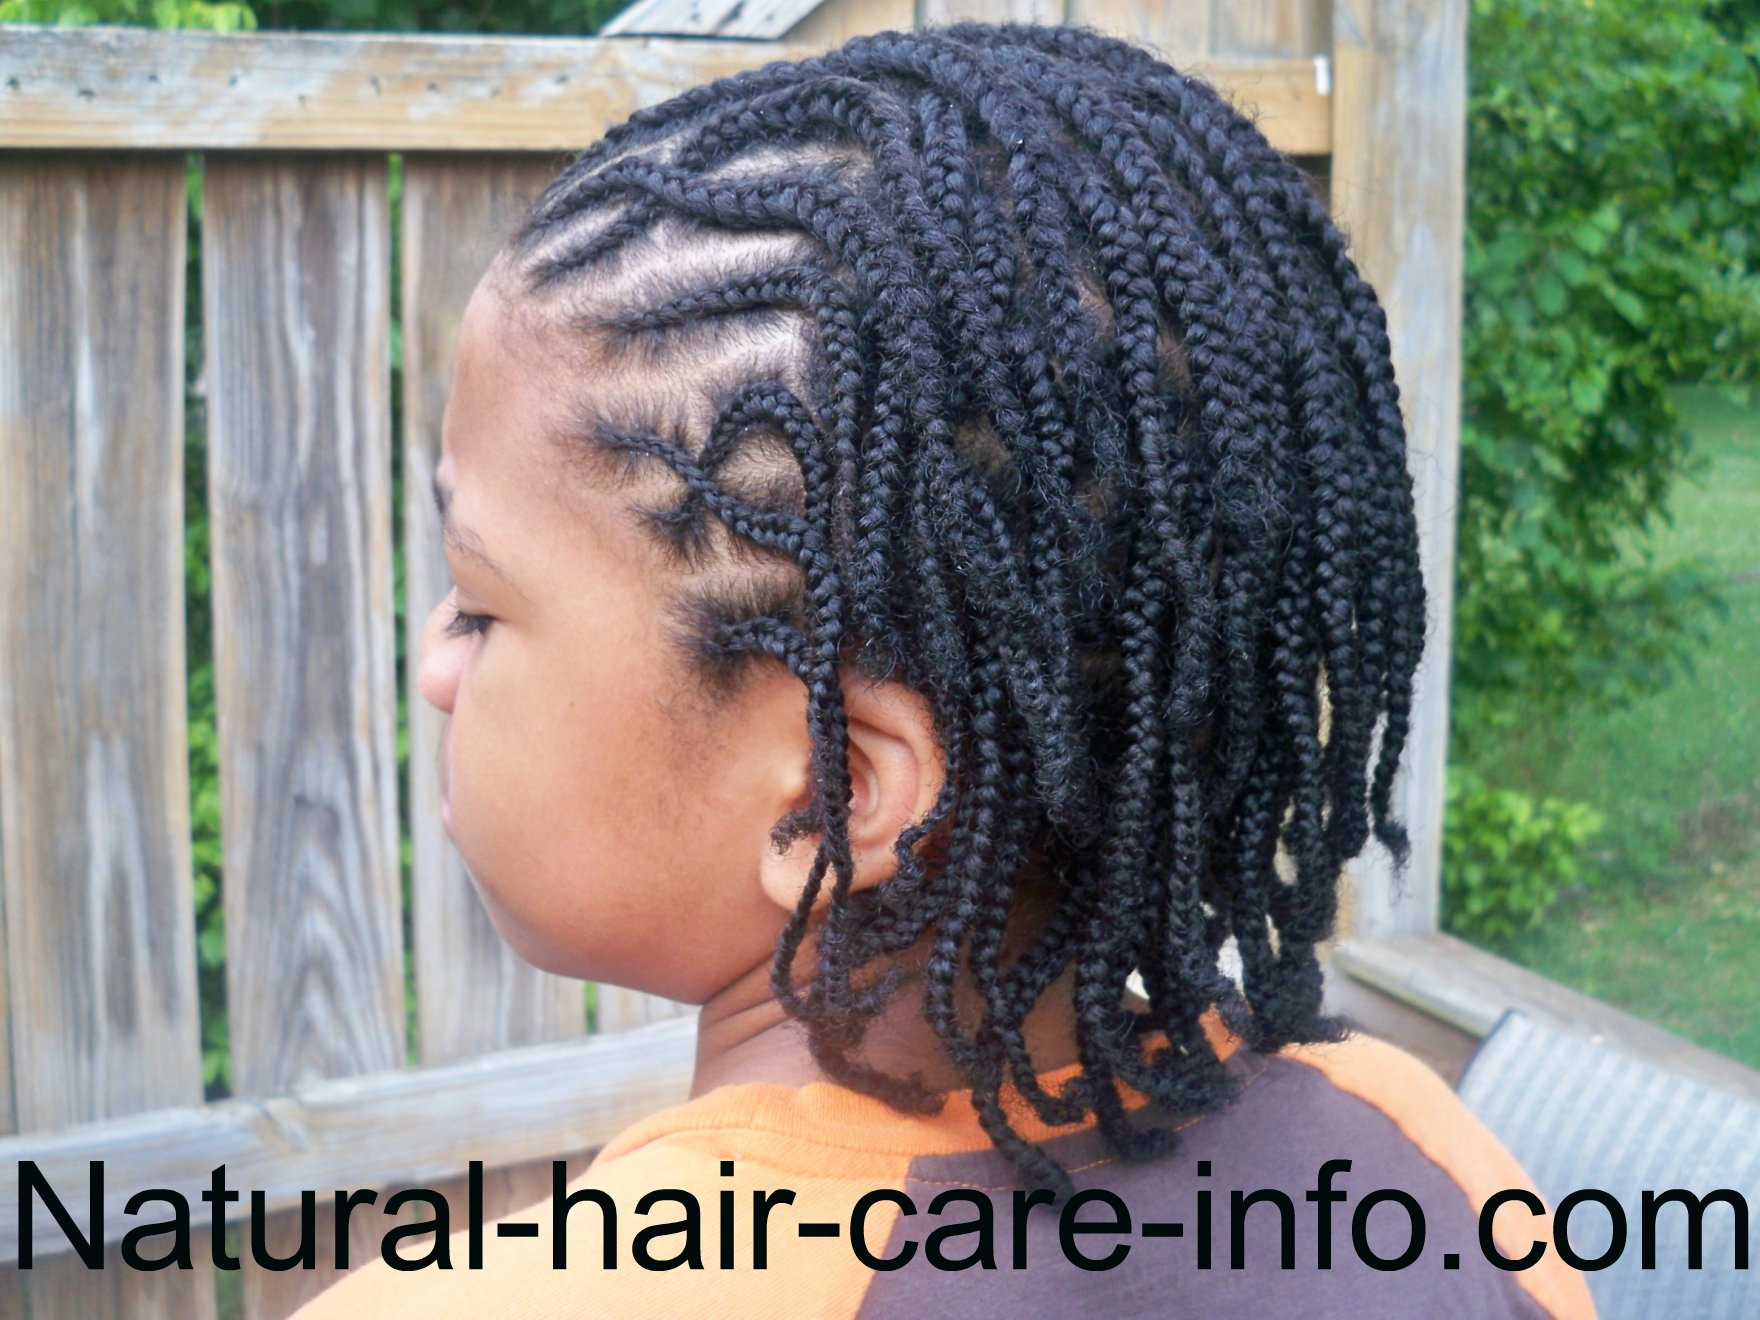 Super Braid Hairstyles For Men Complete List And Tutorials Hairstyles For Men Maxibearus